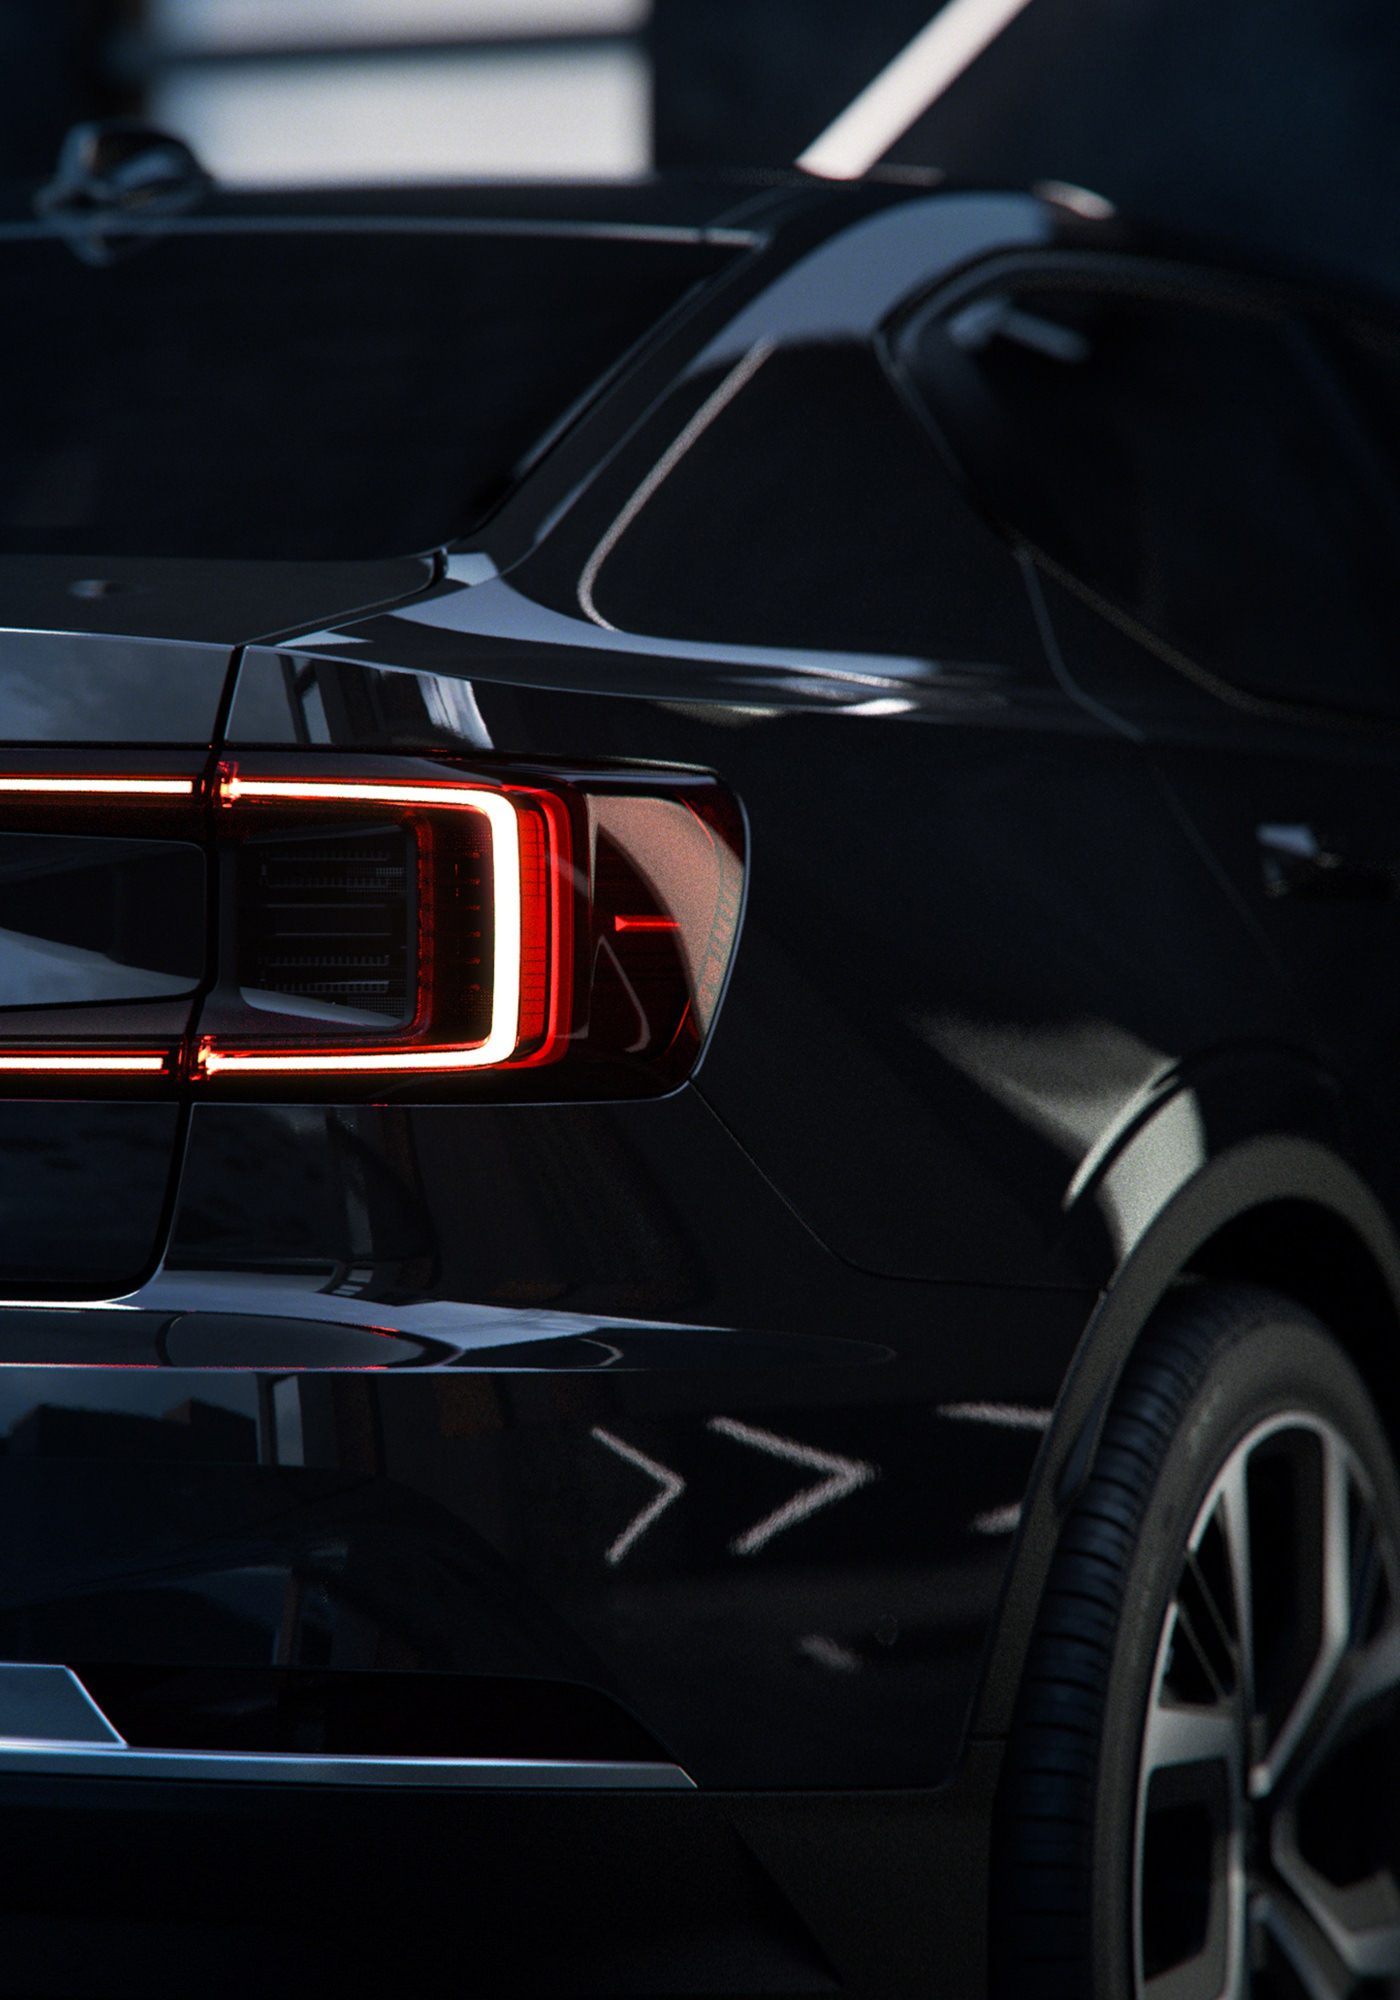 The Polestar 2 Electric Car London Package Black Détails